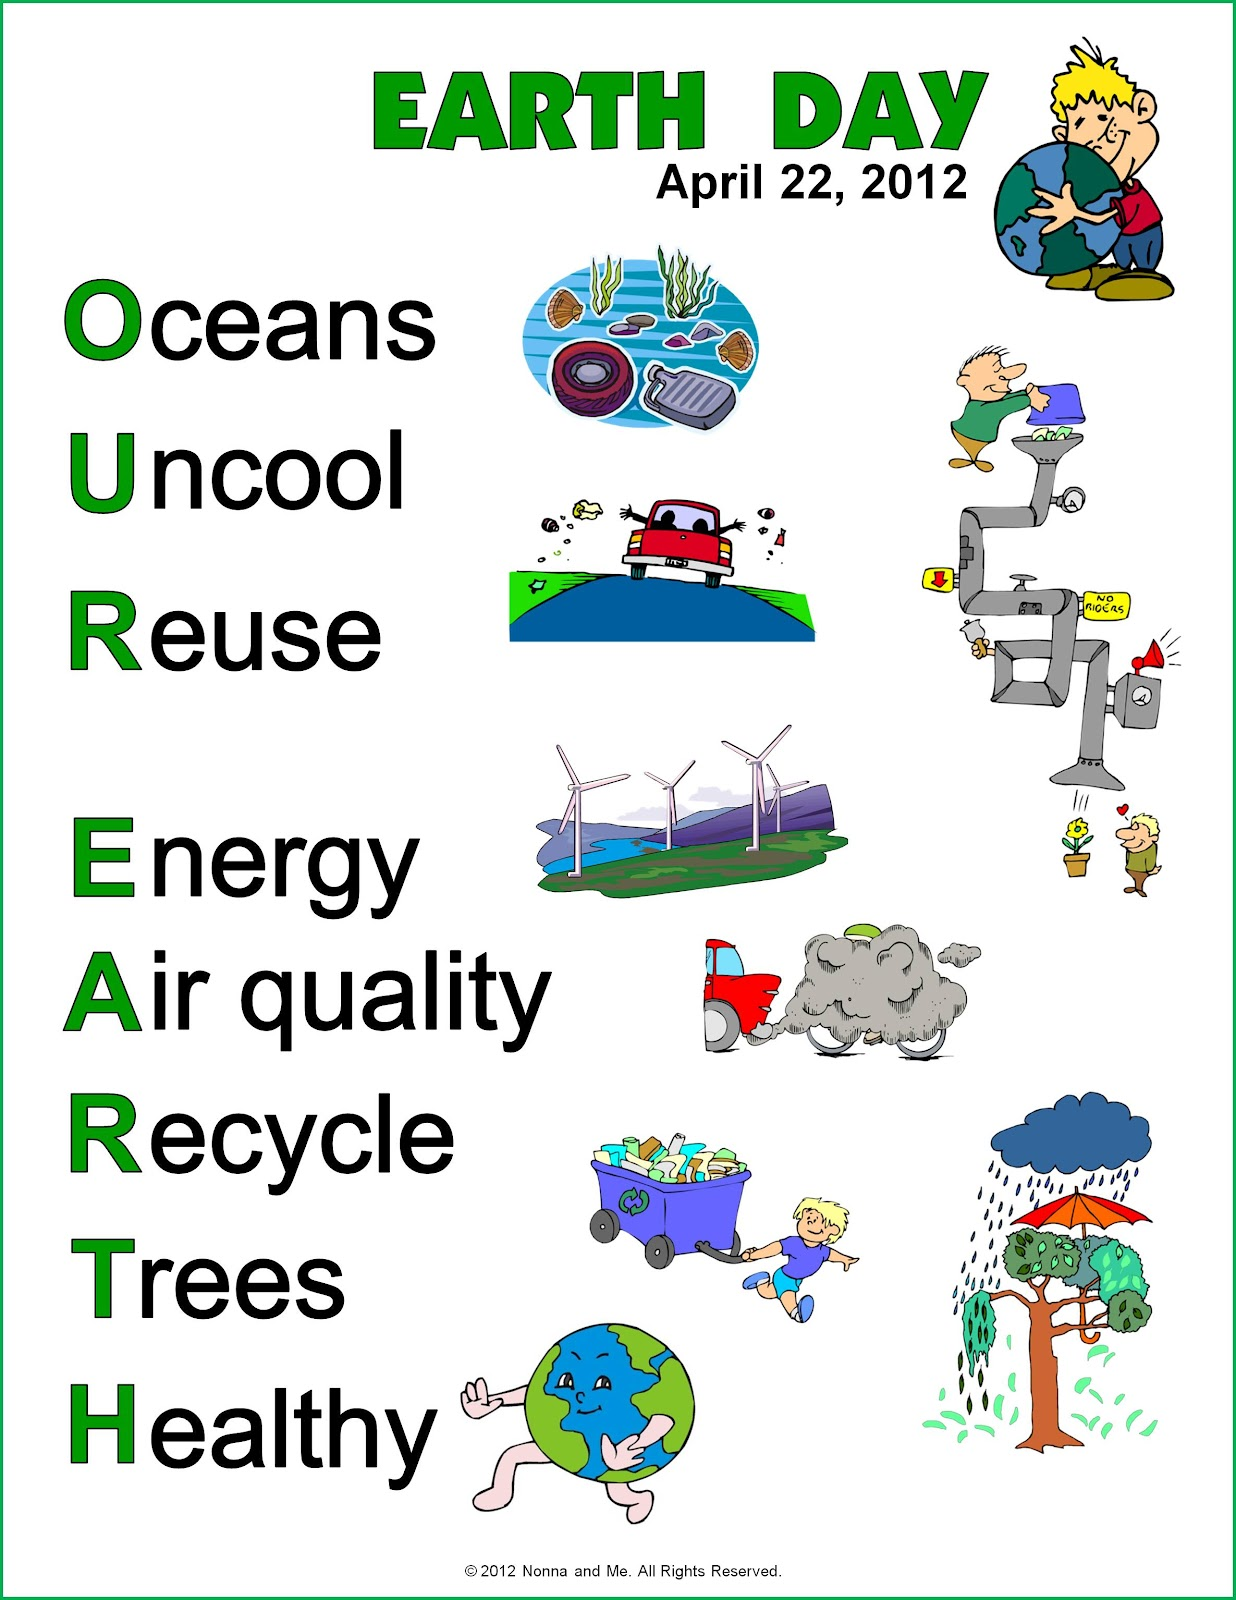 essay on earth day 2012